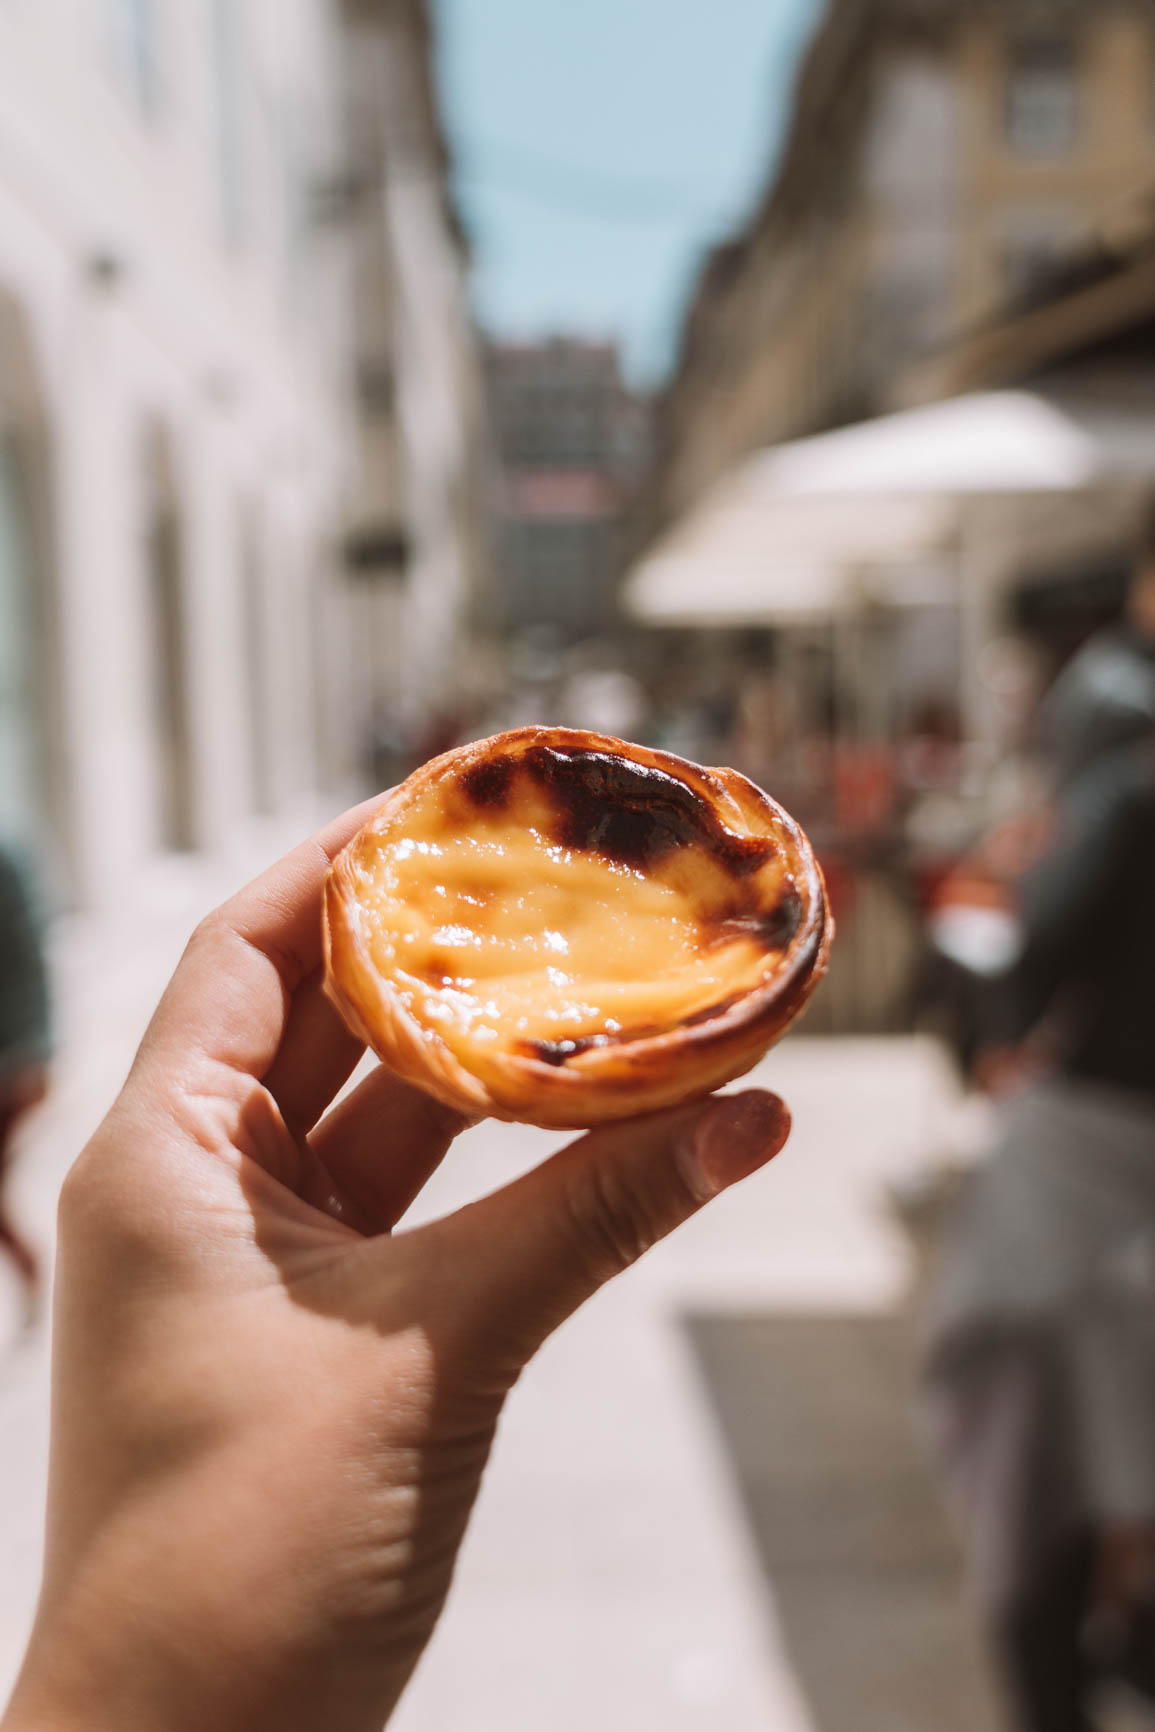 Portugal Food guide: Portuguese Traditional Dishes You Need To Try